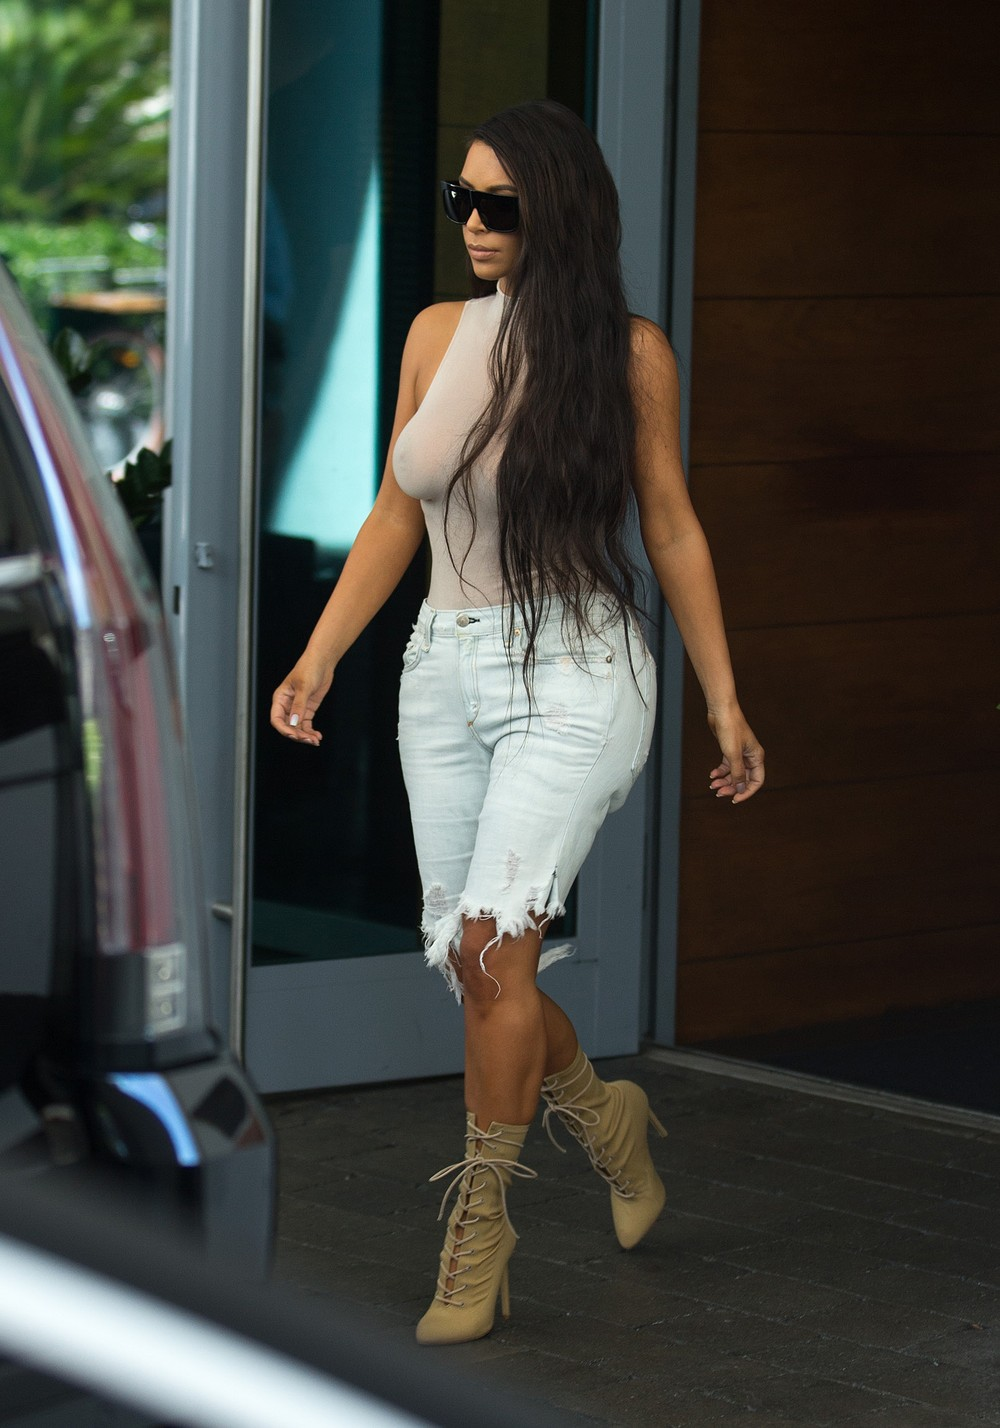 Kim Kardashian heads out in Miami wearing a see-through nude color top.